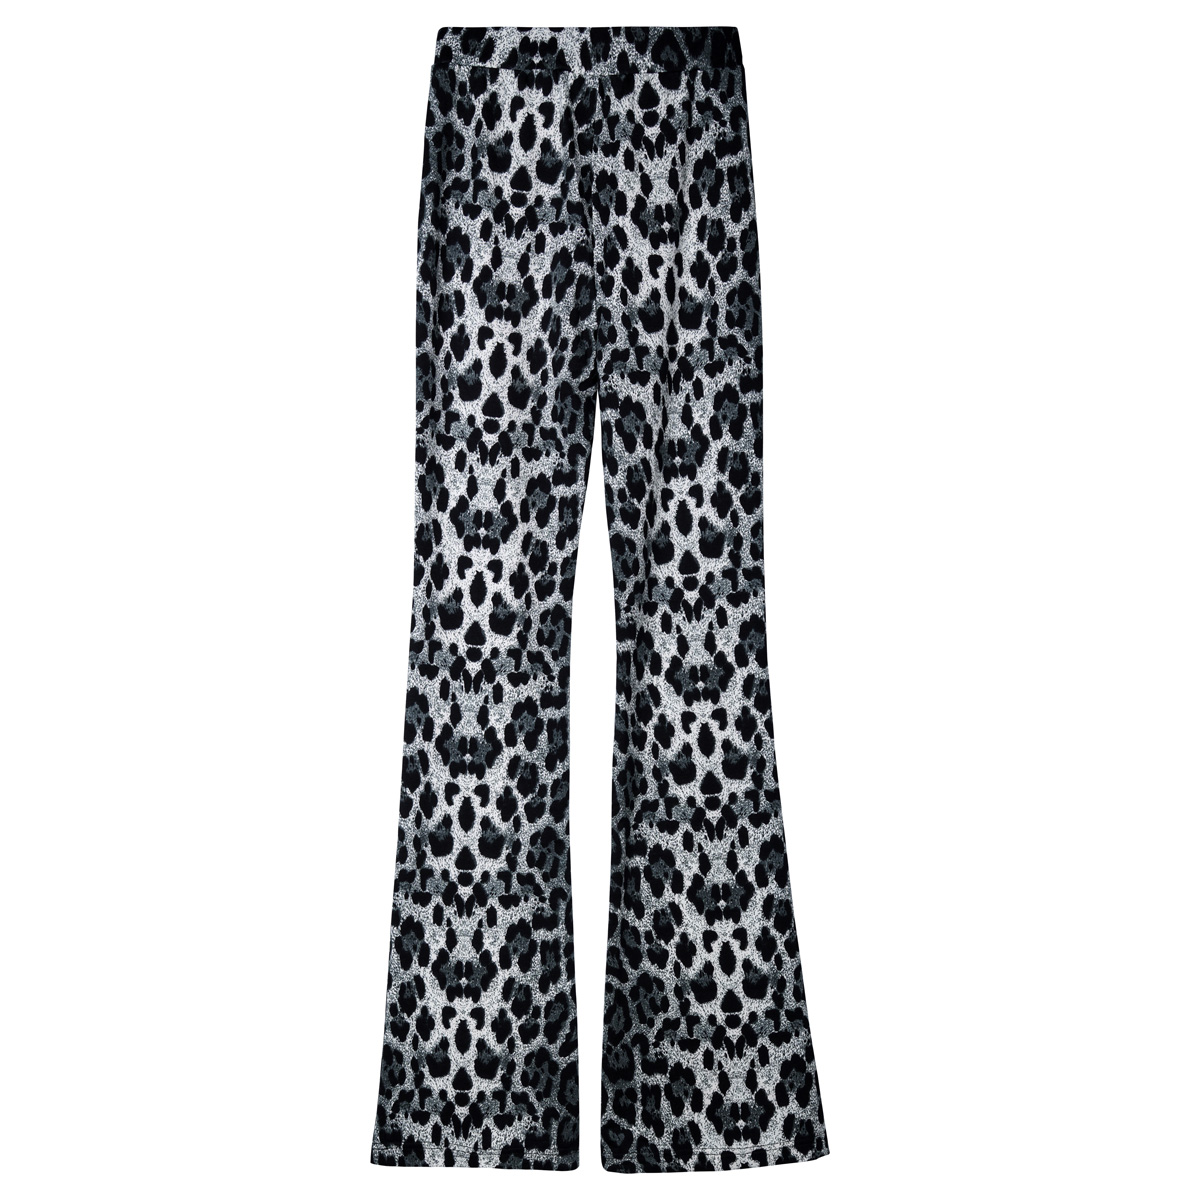 Hose flare grey panther